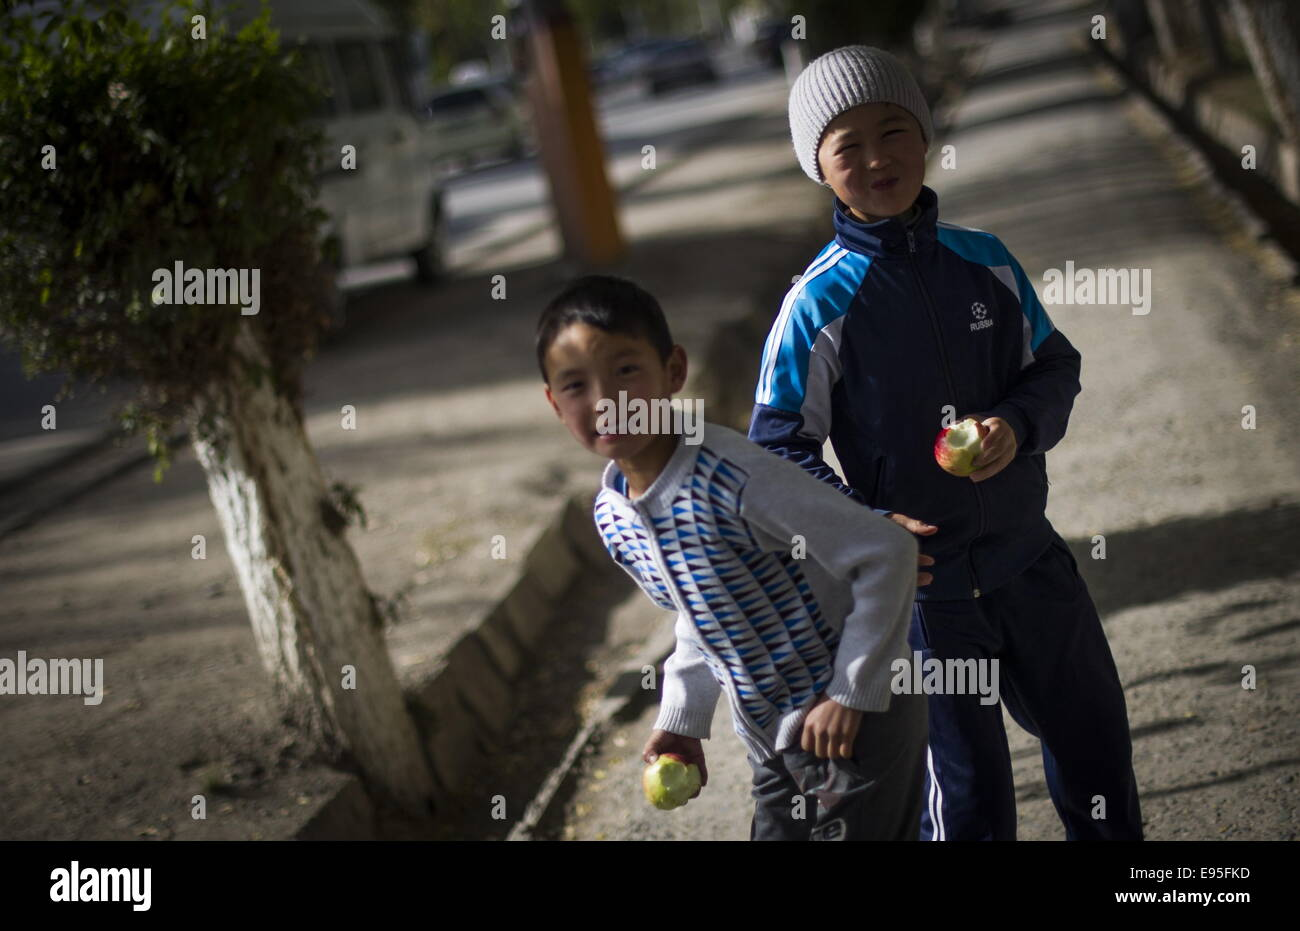 Kyrgyzstan. 20th Oct, 2014. Children in the town of Naryn. Credit:  ITAR-TASS Photo Agency/Alamy Live News - Stock Image